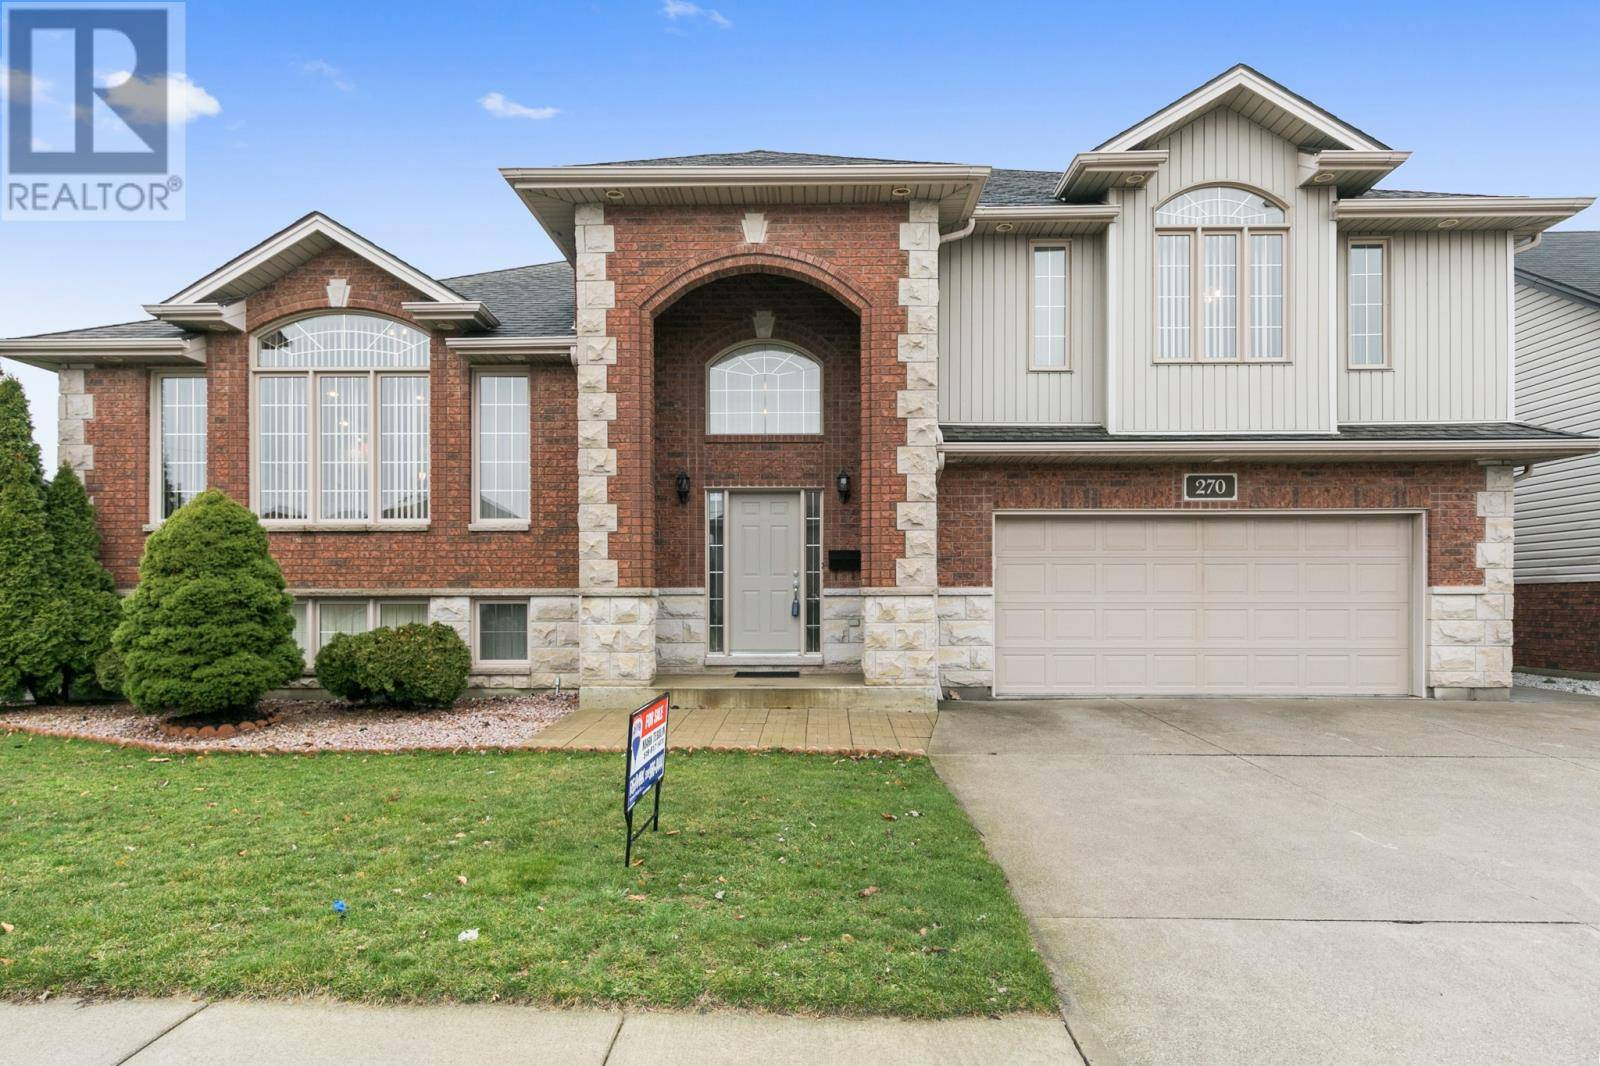 House for sale at 270 Riverview Ave Lasalle Ontario - MLS: 20003801